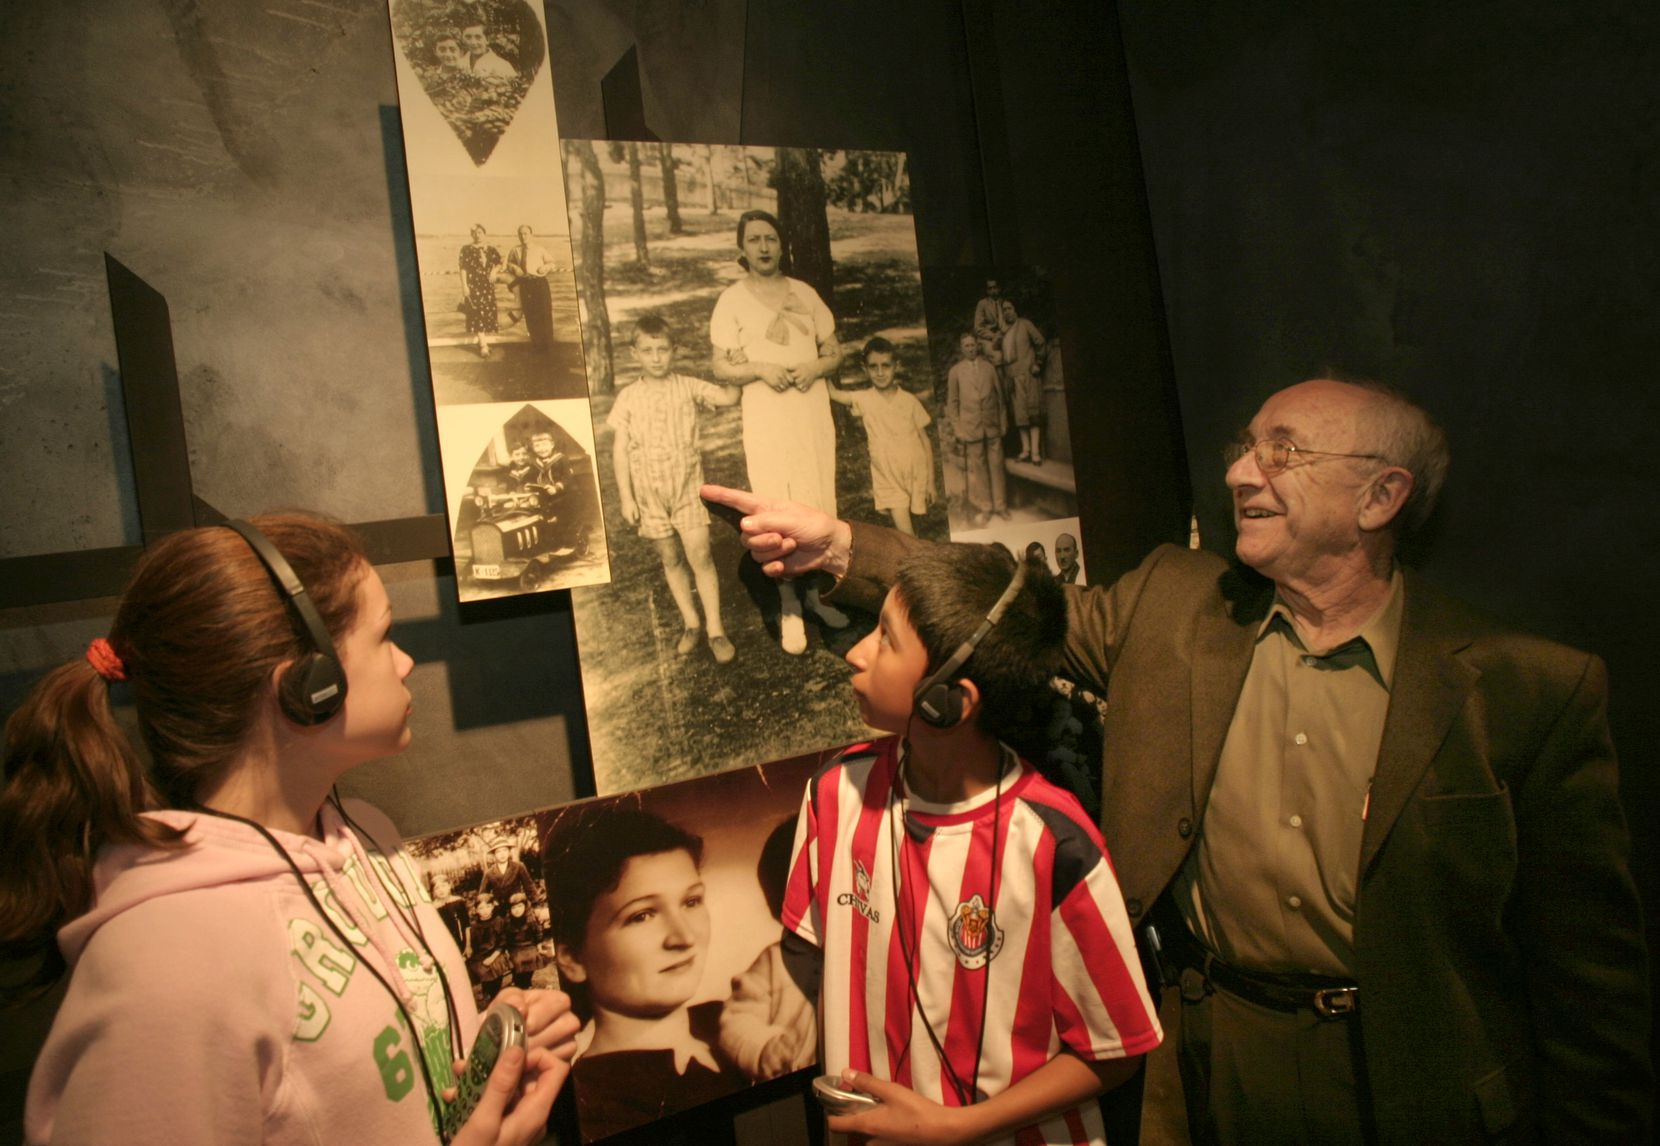 Max Glauben, right, points to himself in a family photo prior to the war, to Little Elm Lakeside Jr. High seventh graders 13-year-old Anastasia Seis, left, and 13-year-old Victor Rodriguez, at The Dallas Holocaust Museum on March 08, 2005.